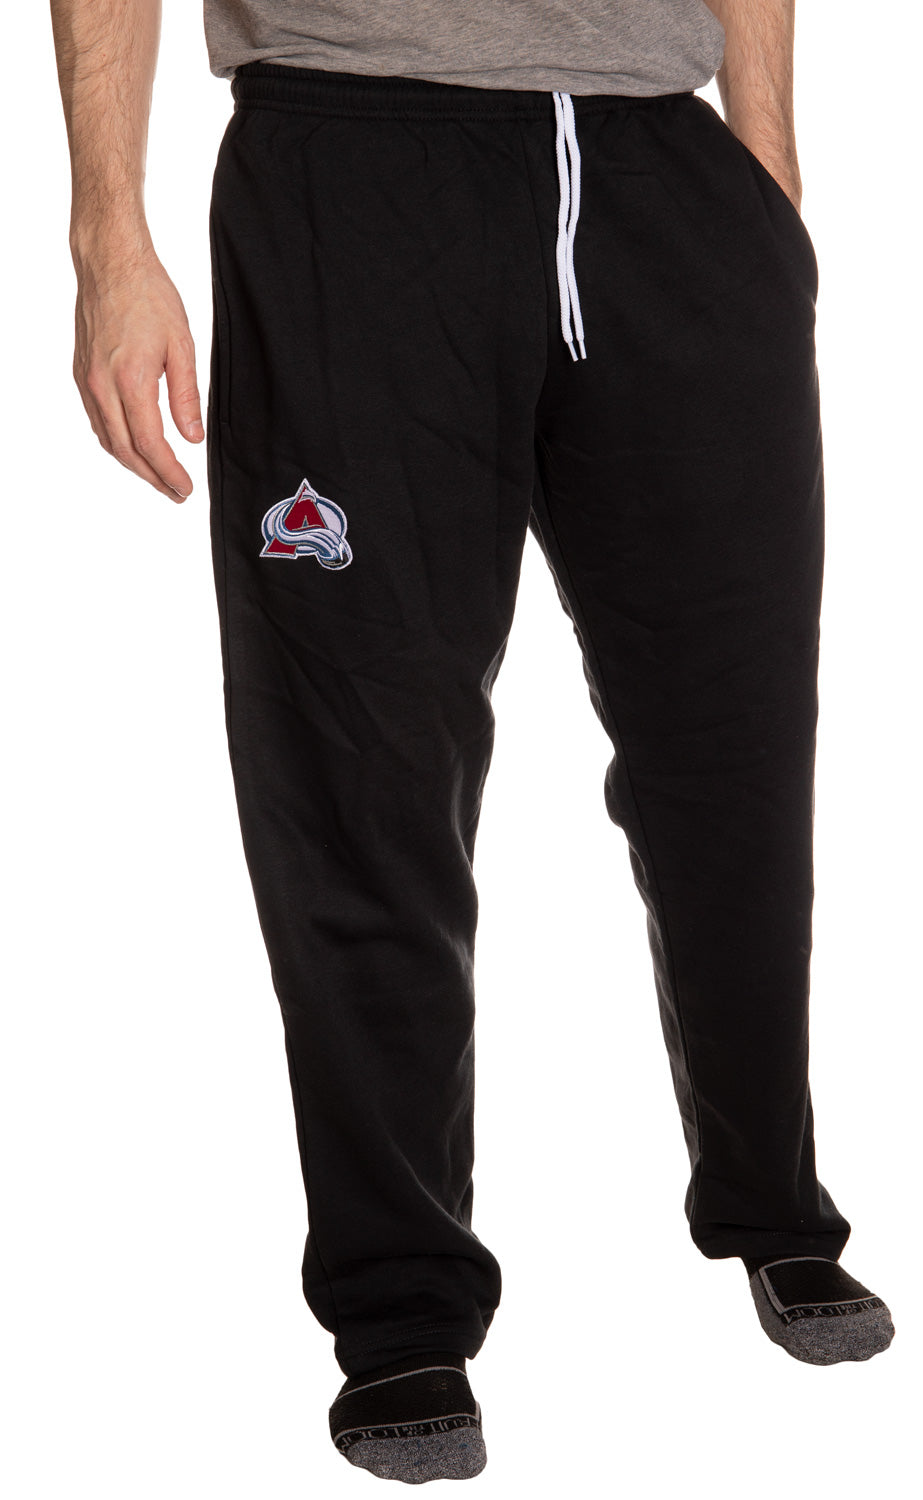 Colorado Avalanche Embroidered Logo Sweatpants for Men Front View, Hands in Side Pockets.